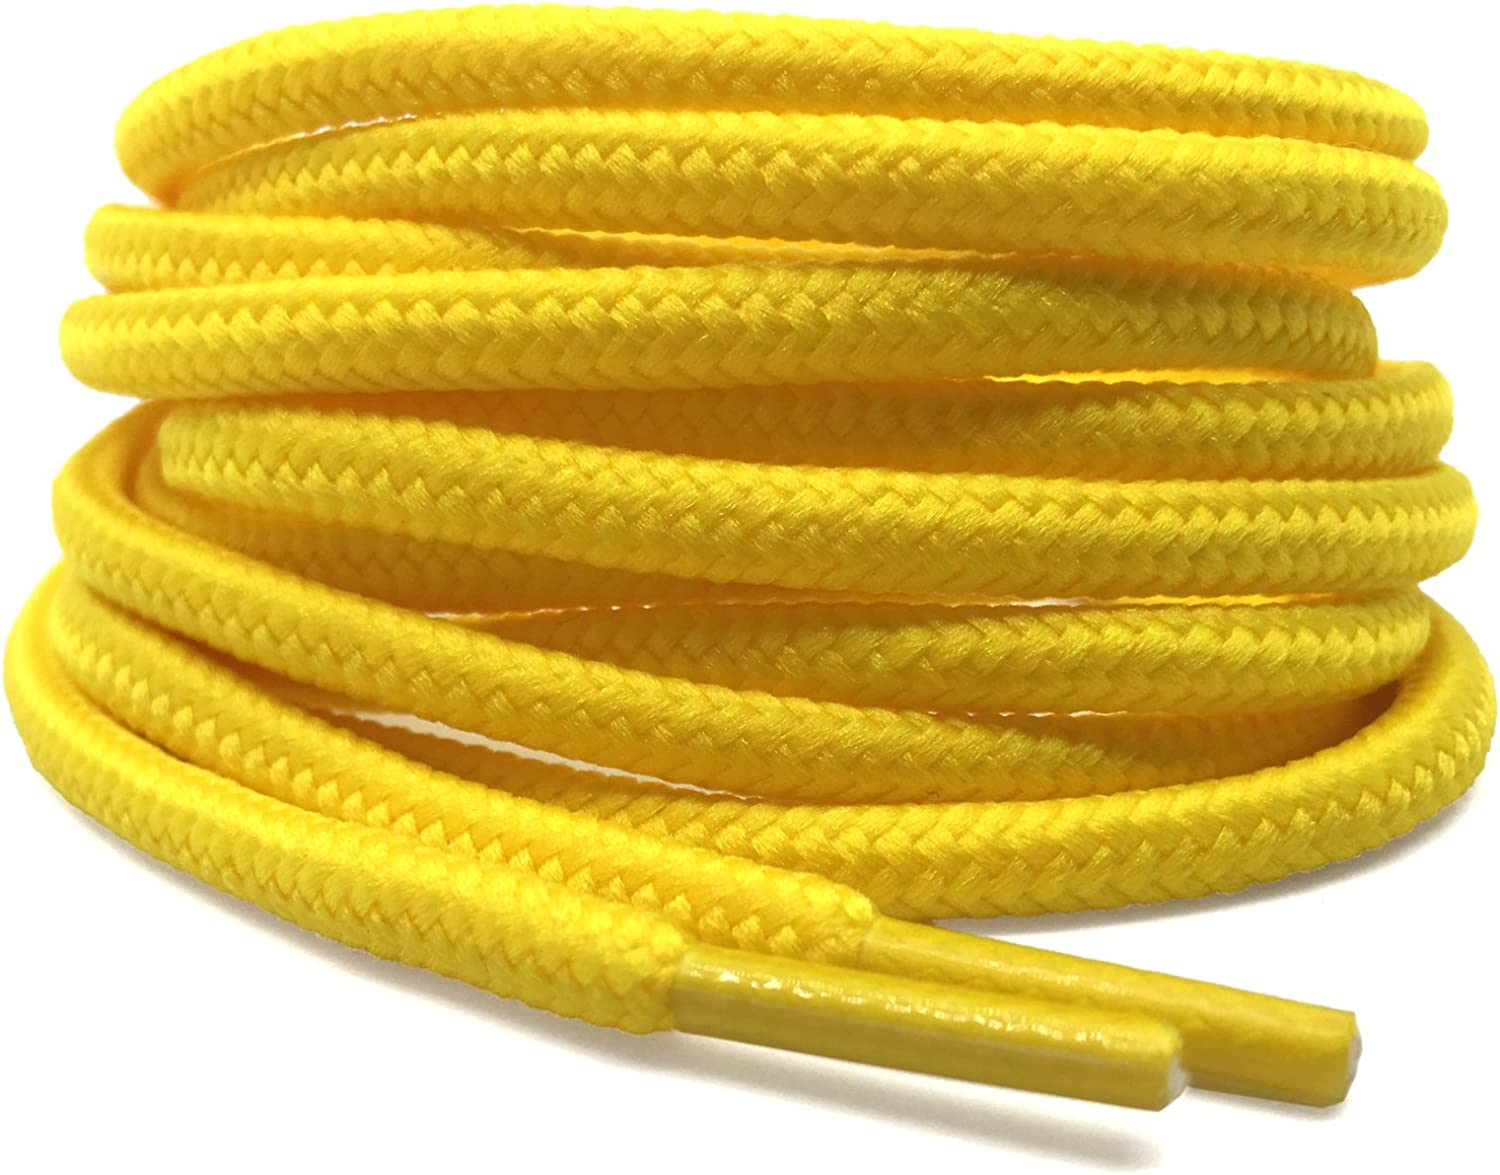 YFINE Daily bargain sale 2 Pair Athletic Charlotte Mall Shoelaces Round for Boots Laces Shoe Shoes